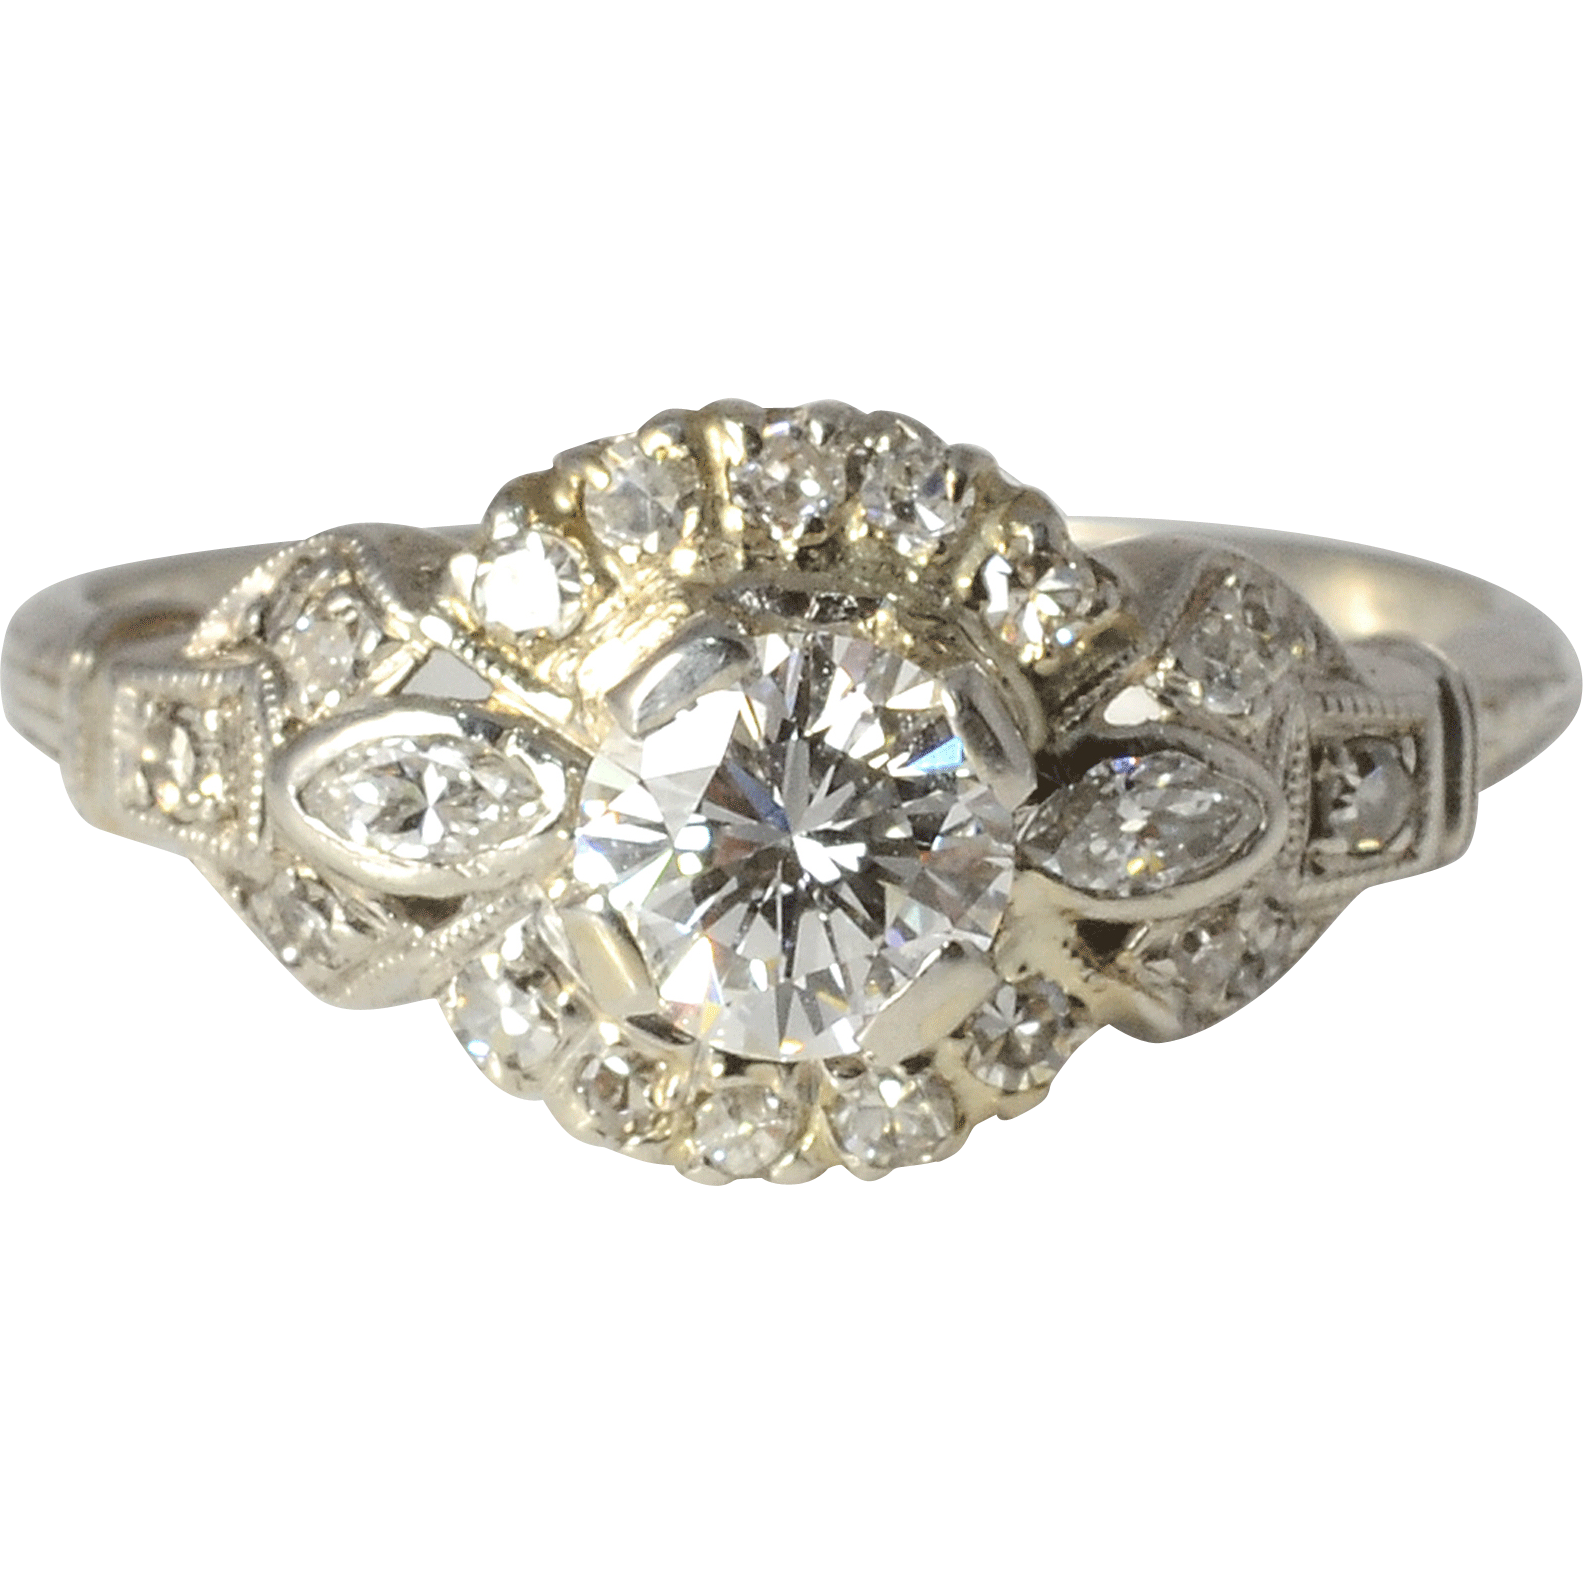 Platinum 0.54 Carat Center Diamond Engagement Ring